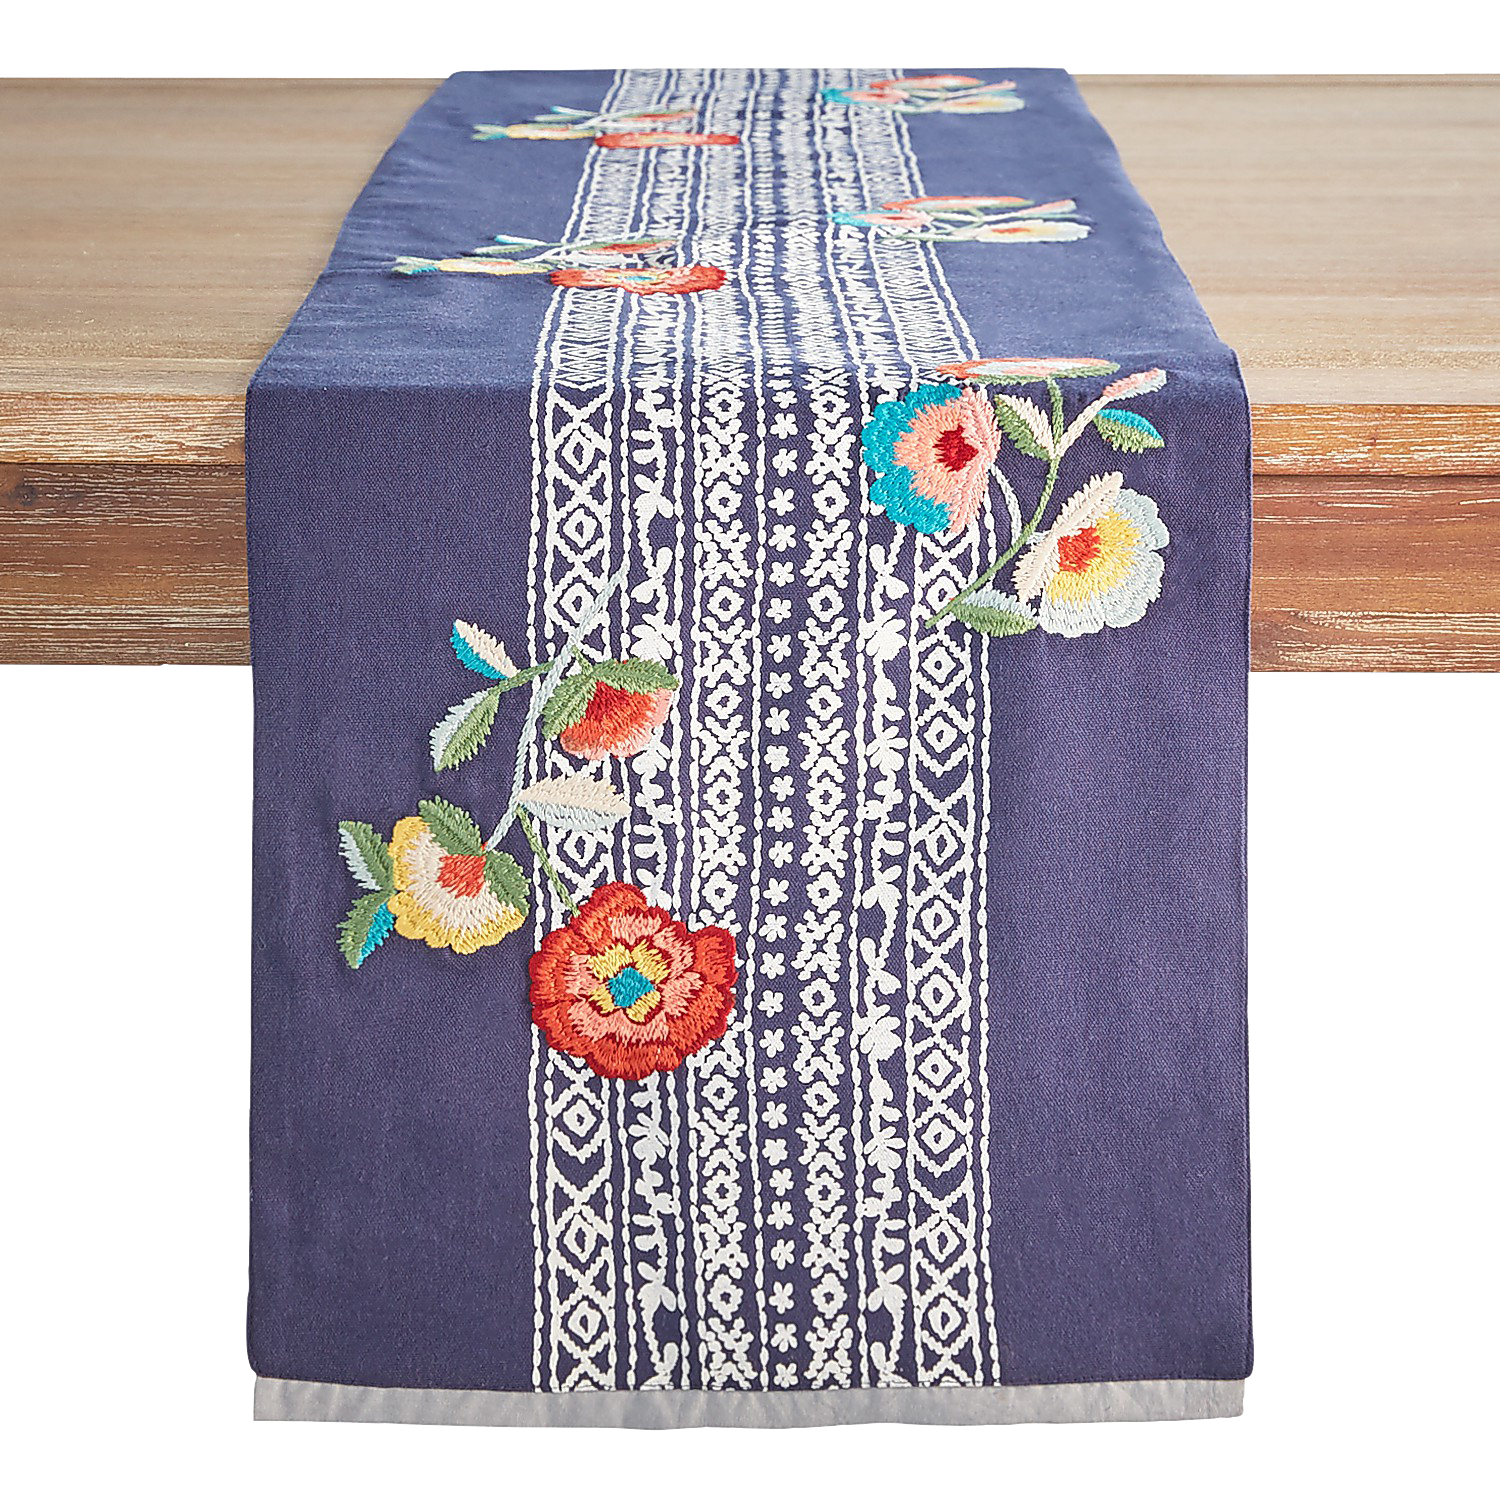 "Floral Band 72"" Table Runner"